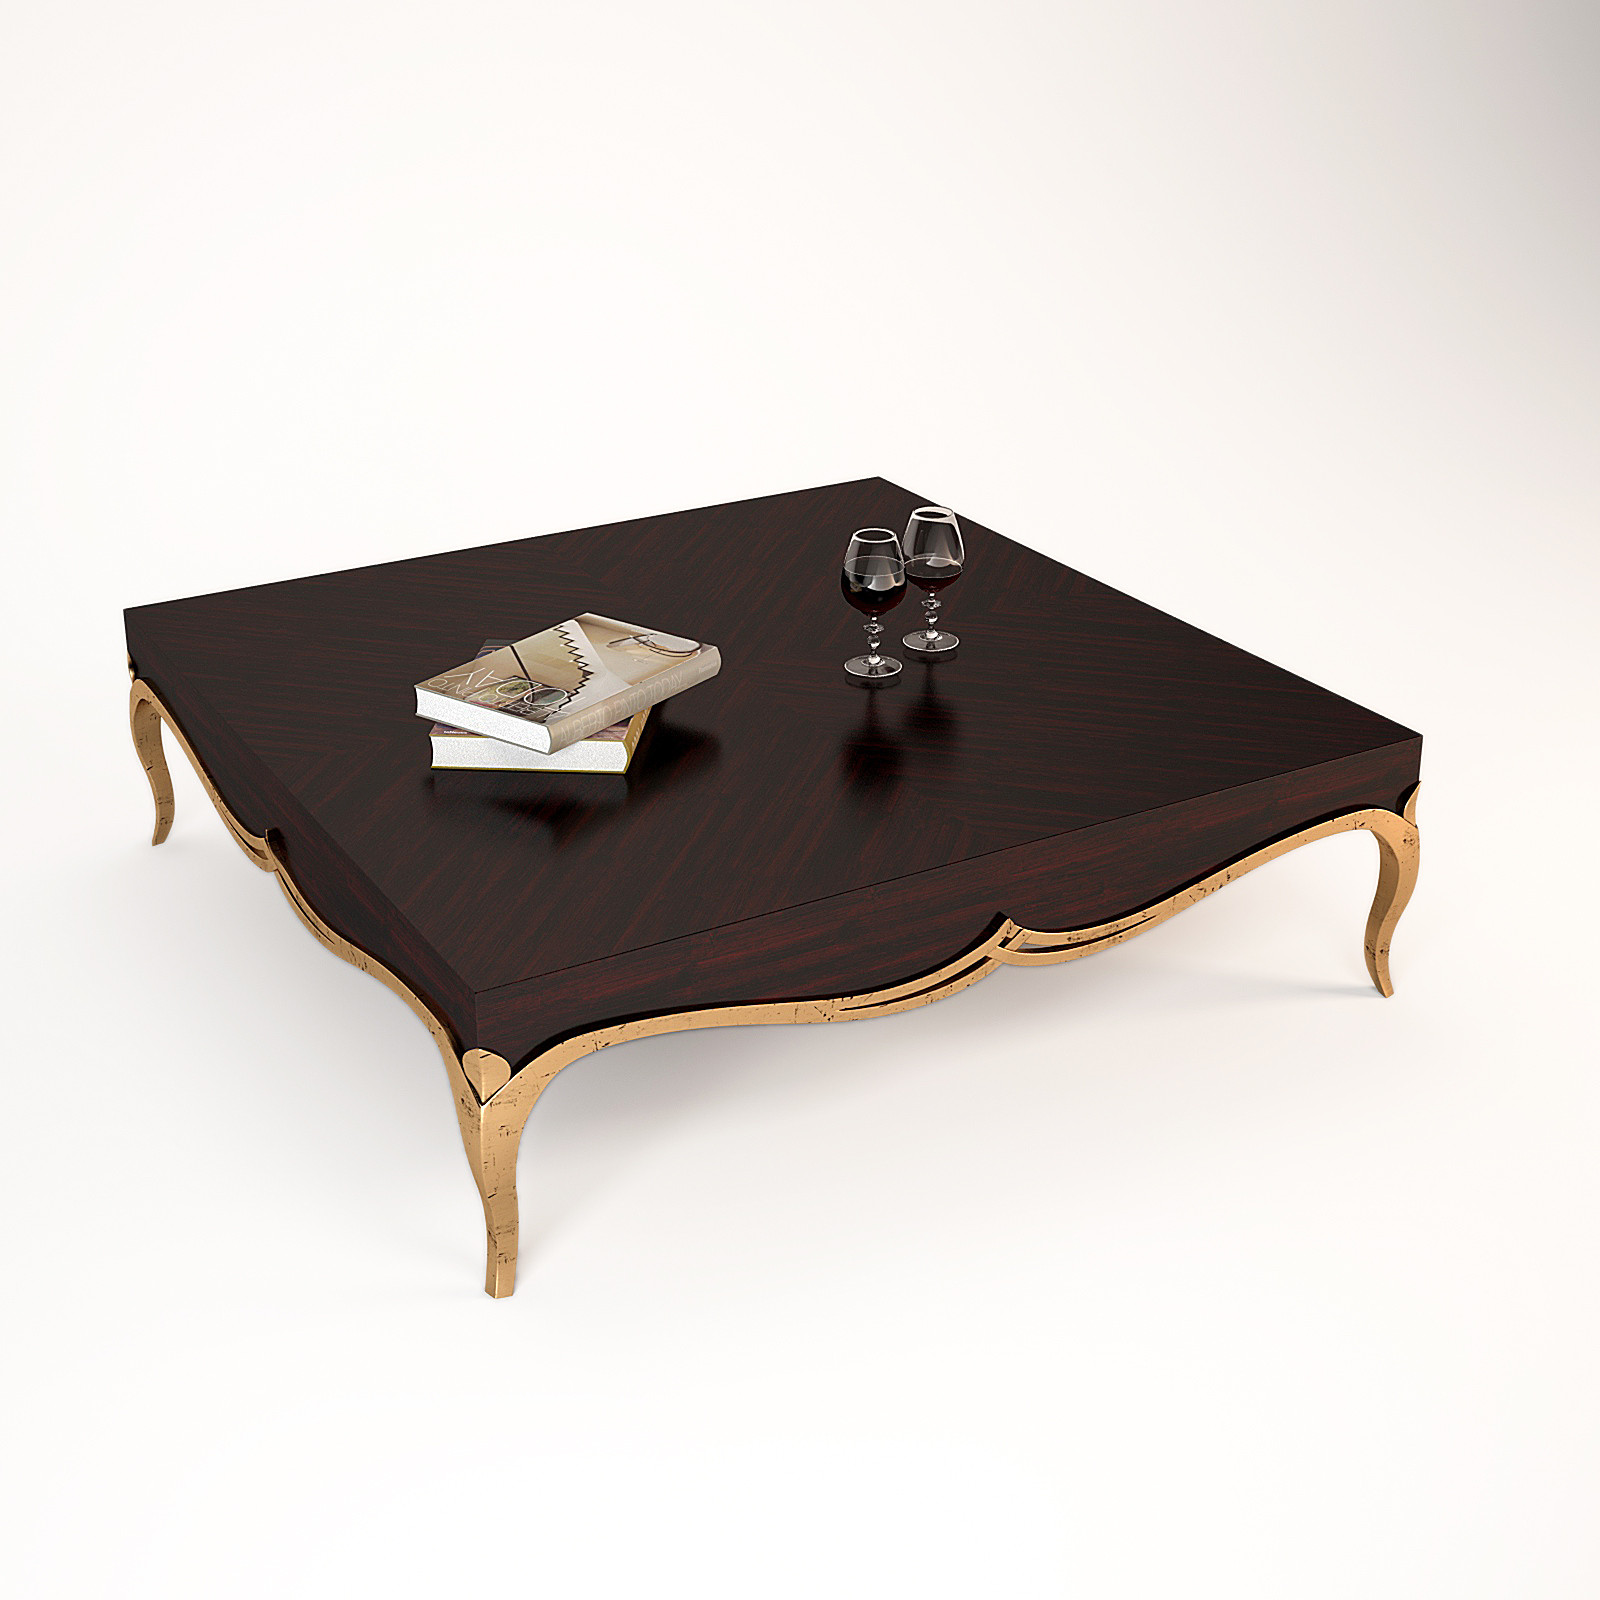 christopher guy journal table 3d max